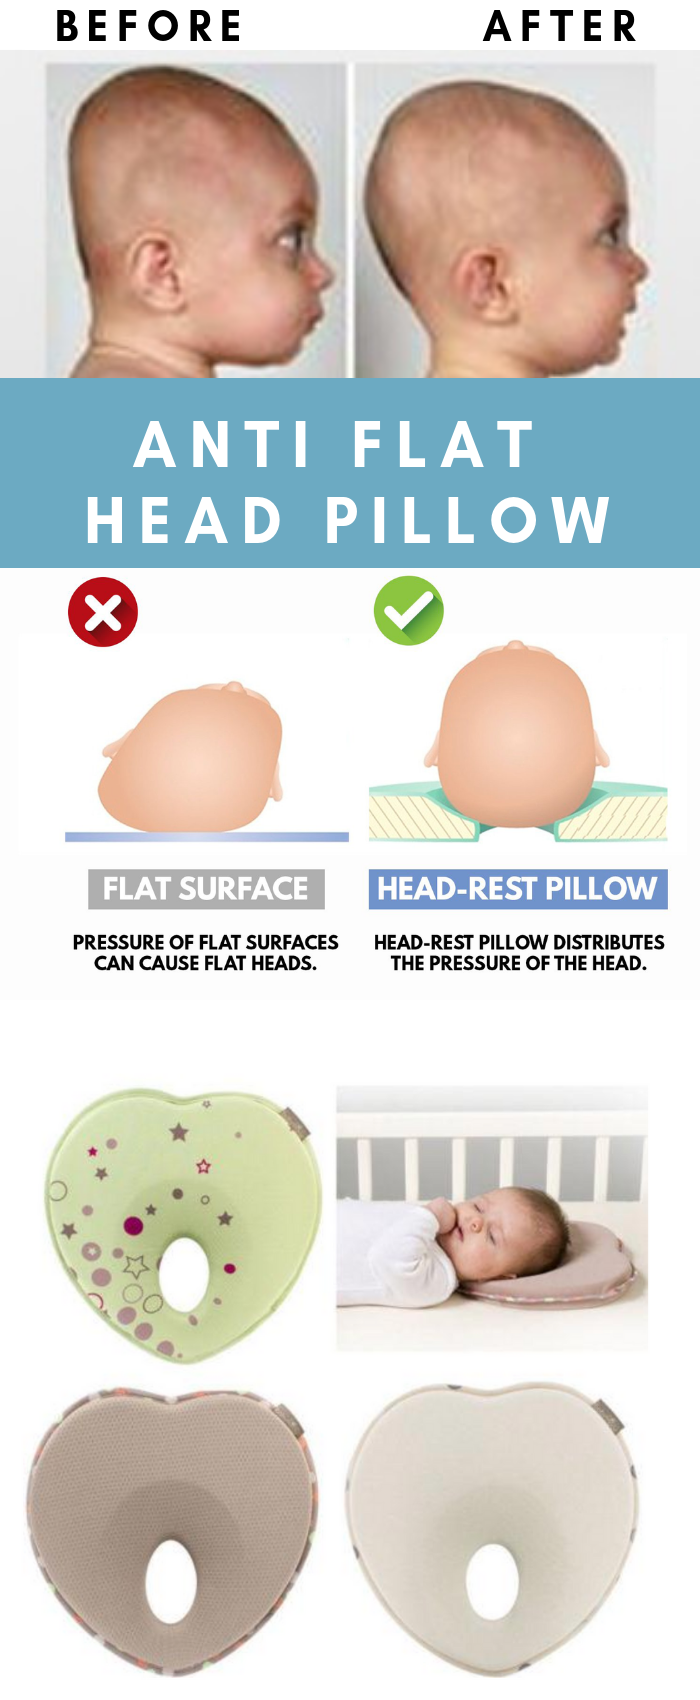 Anti Flat Head Pillow New Baby Products Anti Baby Flat Newbabyproducts Pillow Products In 2020 Flat Head Pillow New Baby Products Head Pillow